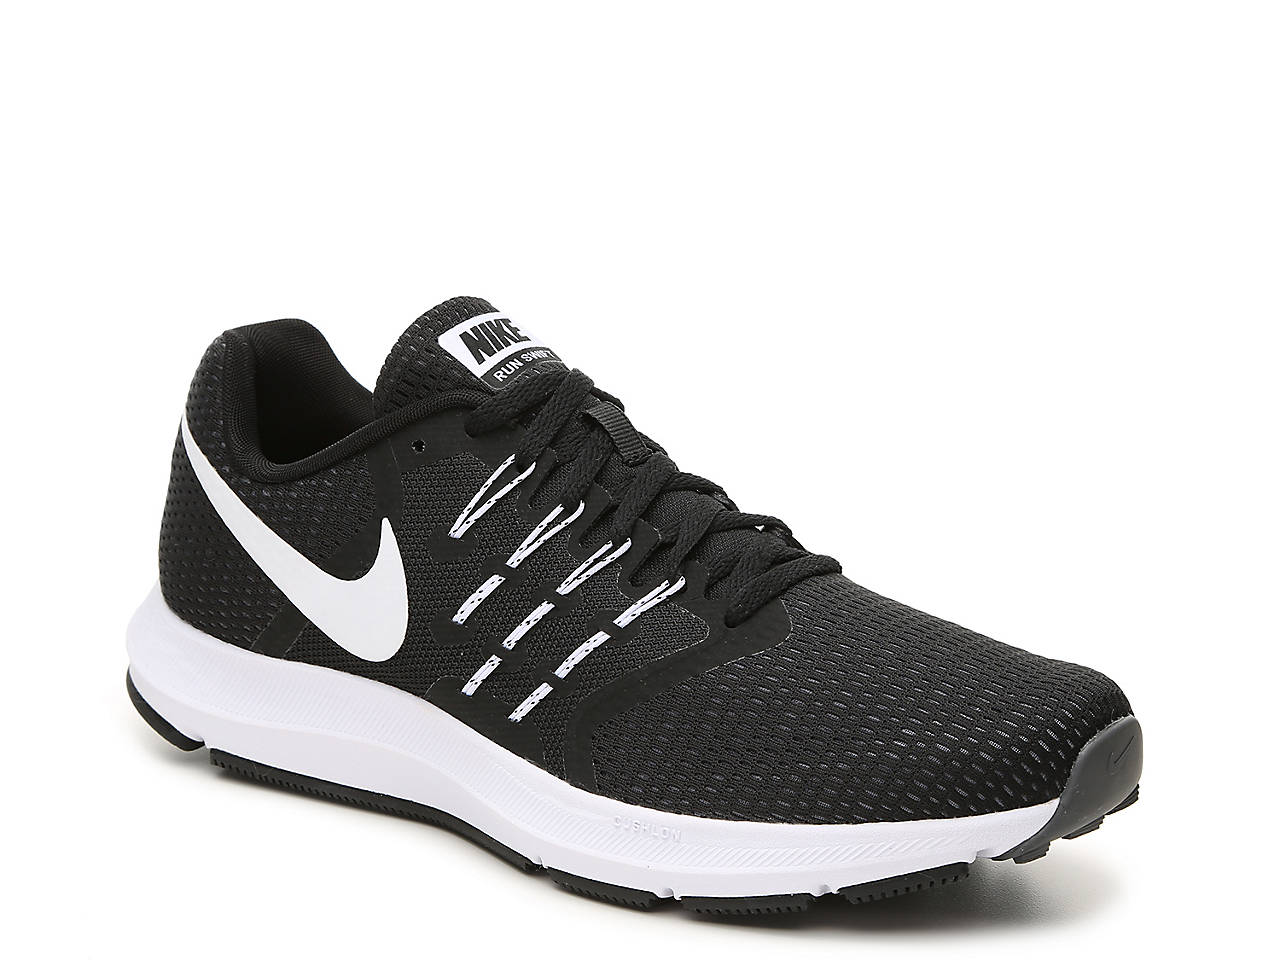 3cefa1c82c01d Nike Run Swift Lightweight Running Shoe - Men s Men s Shoes